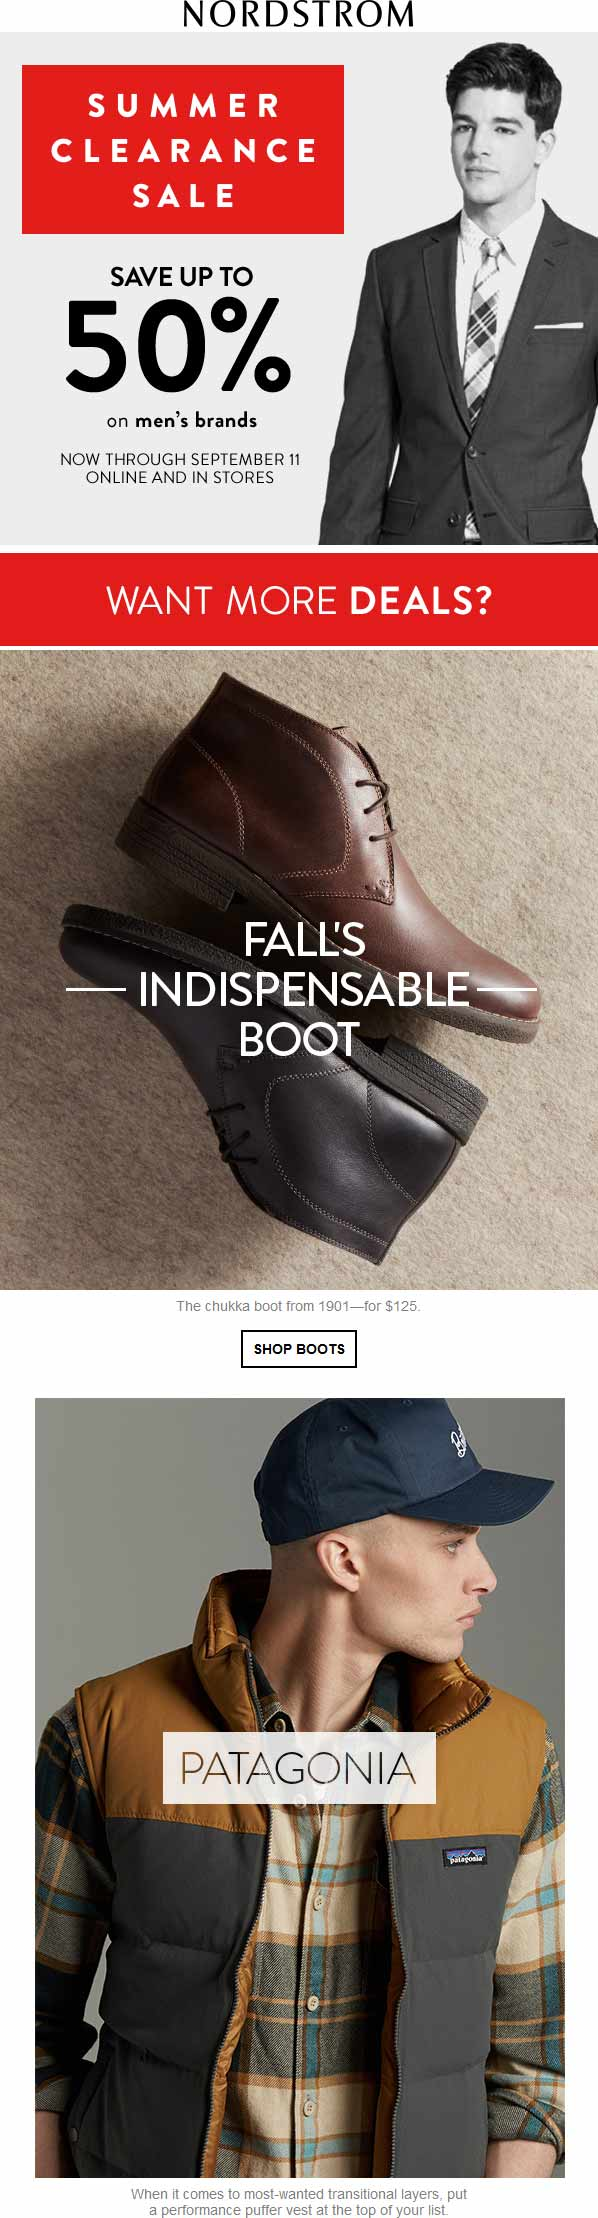 Nordstrom Coupon July 2017 Mens 50% clearance sale going on at Nordstrom, ditto online